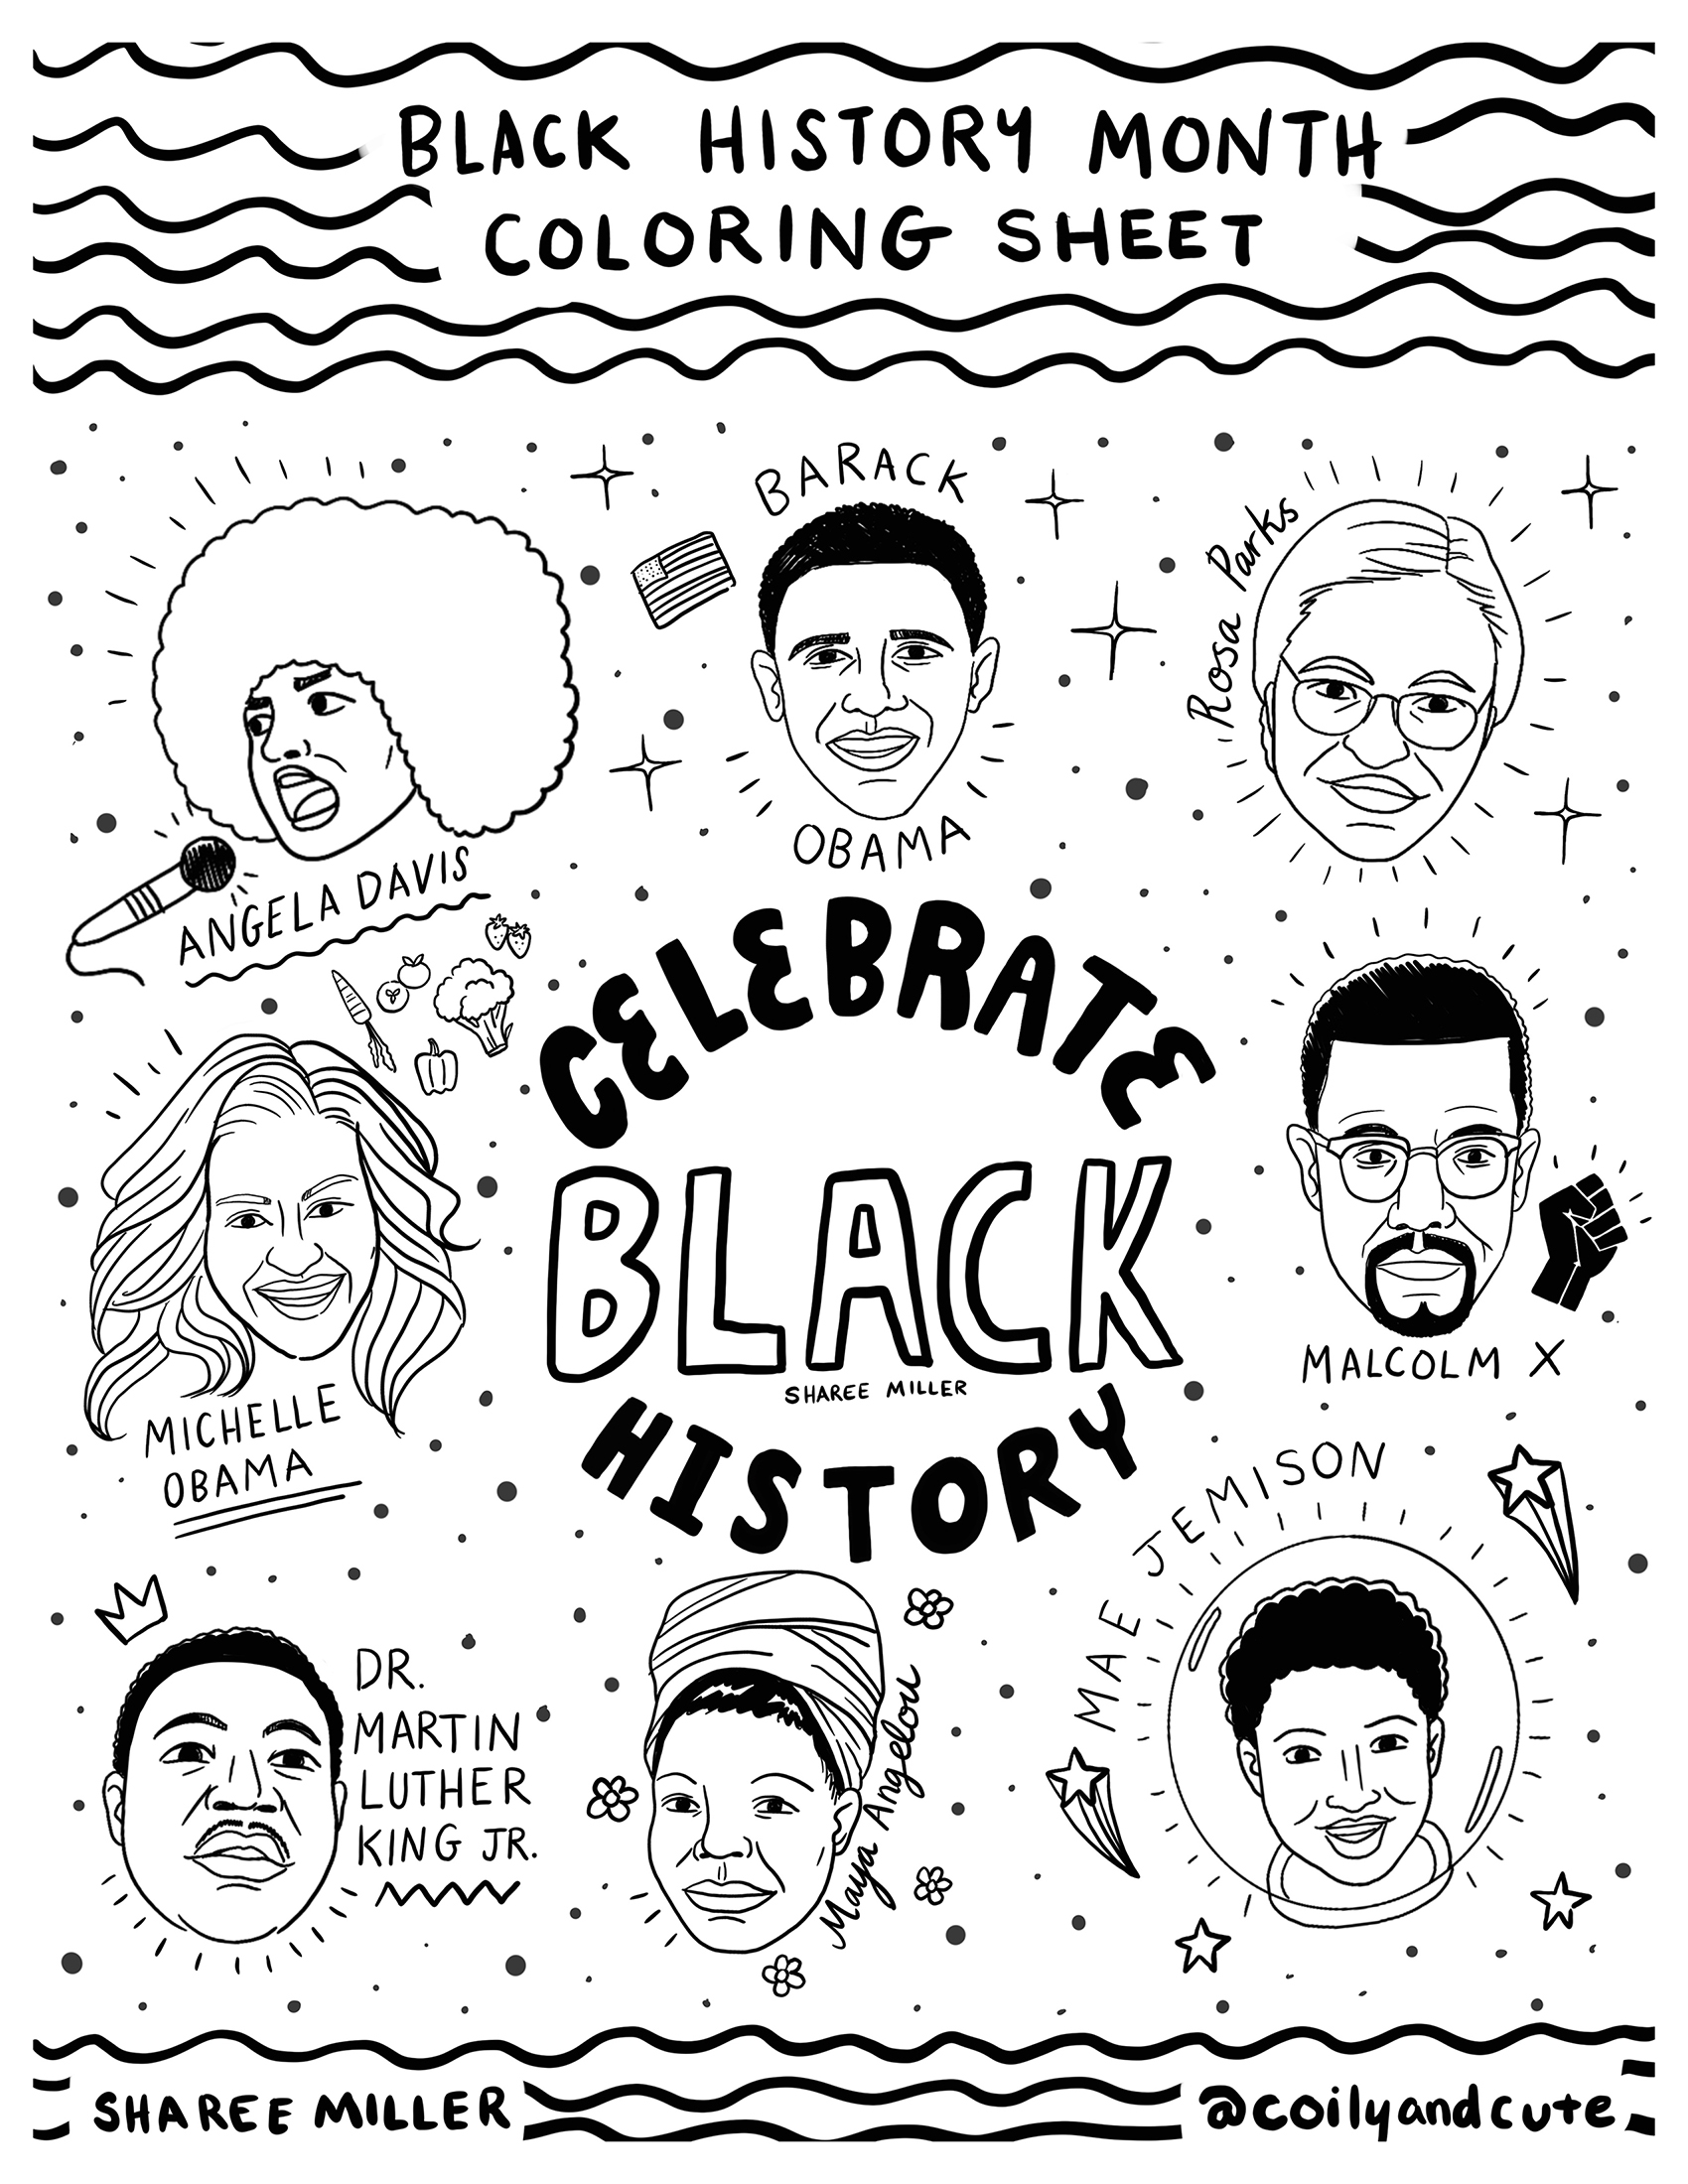 14 coloring pages of black history month - Print Color Craft | 2200x1700